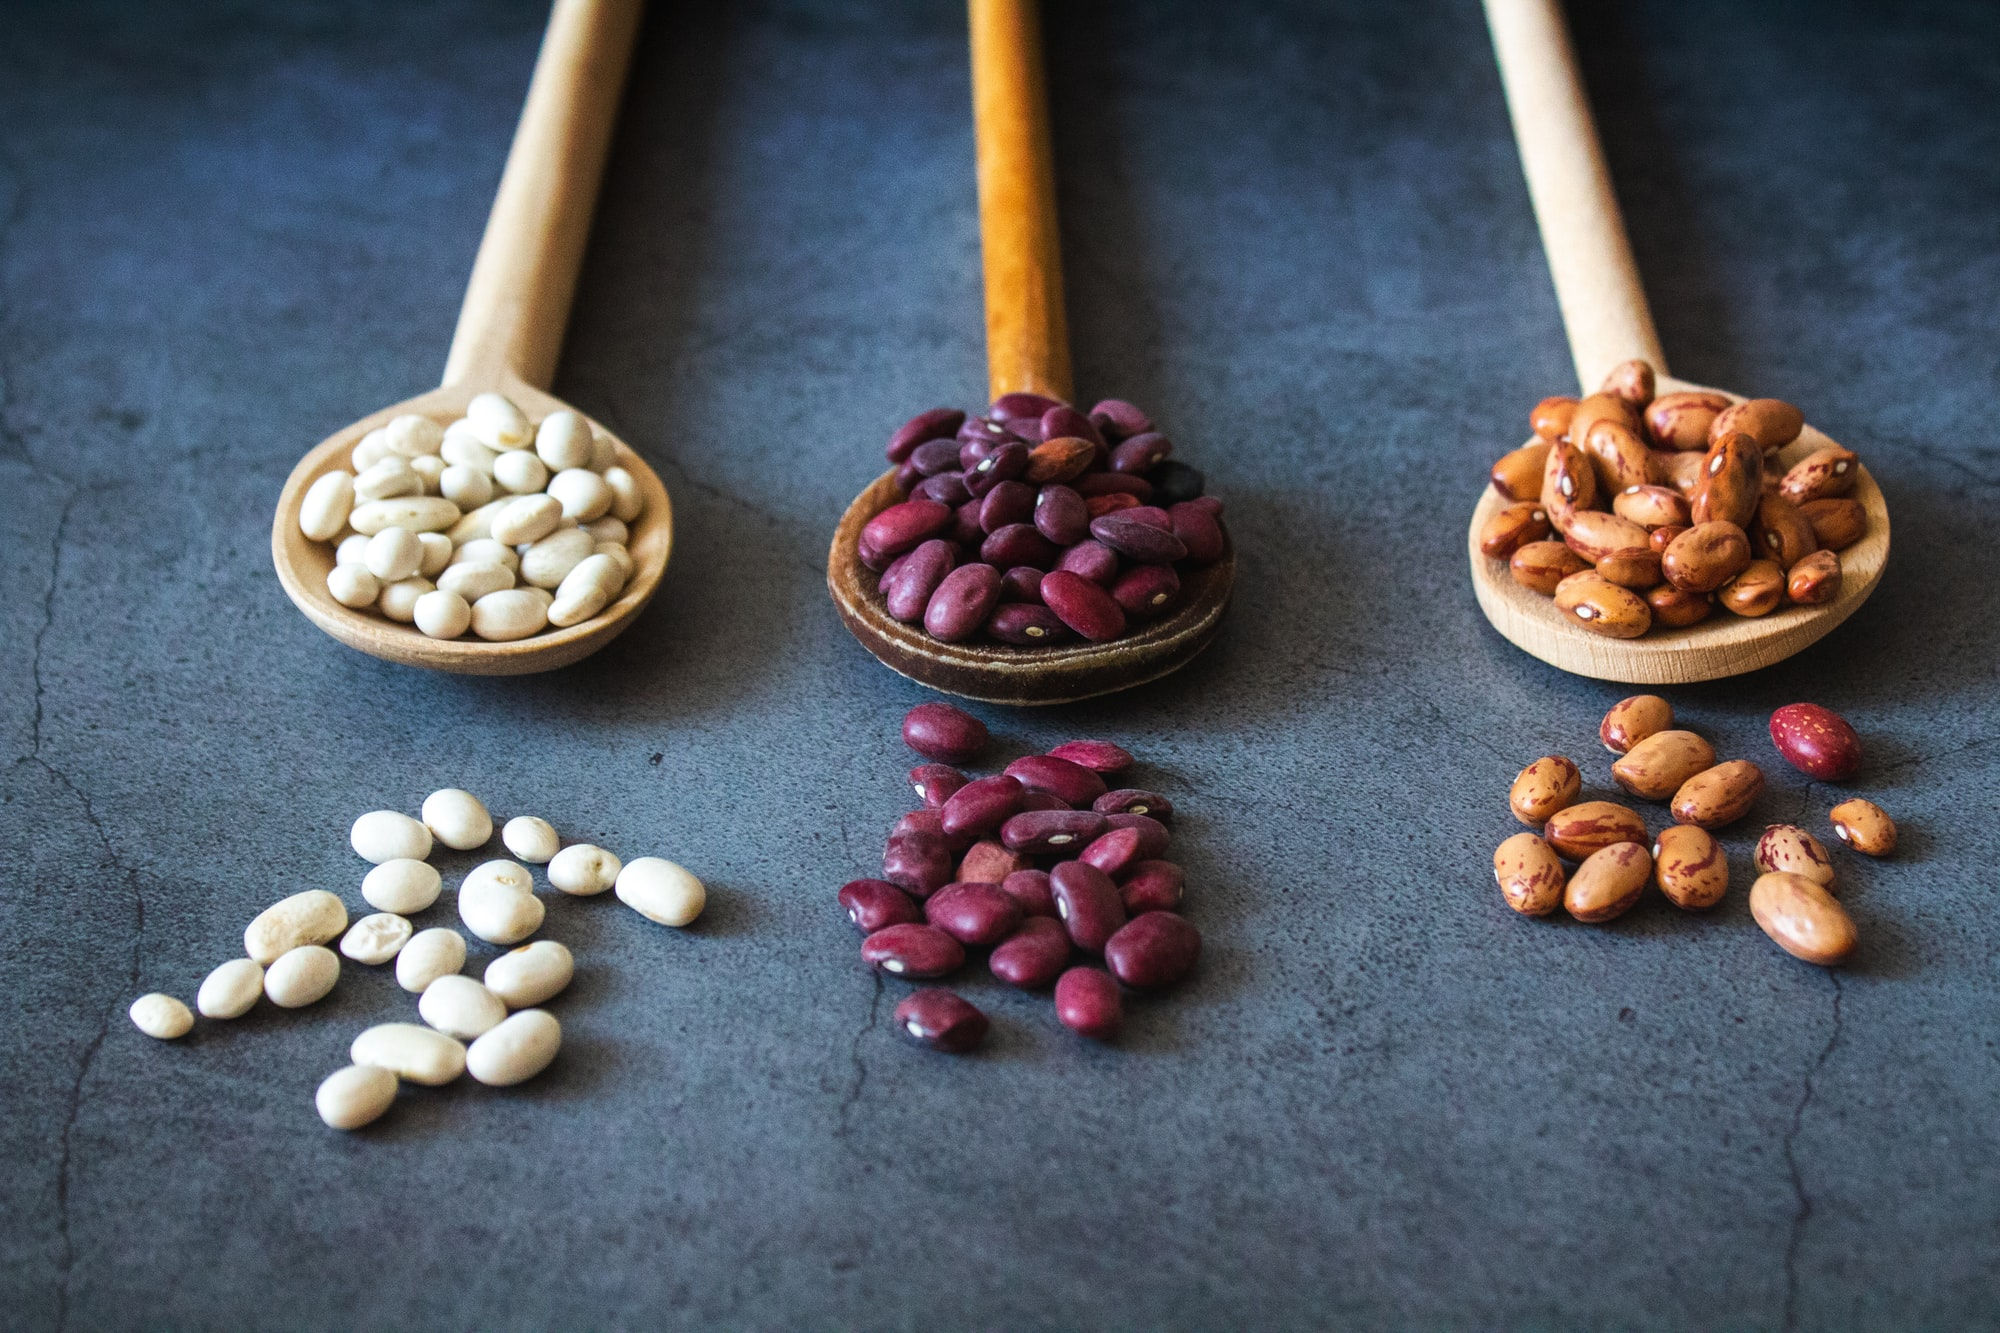 Different kinds of beans on dark background